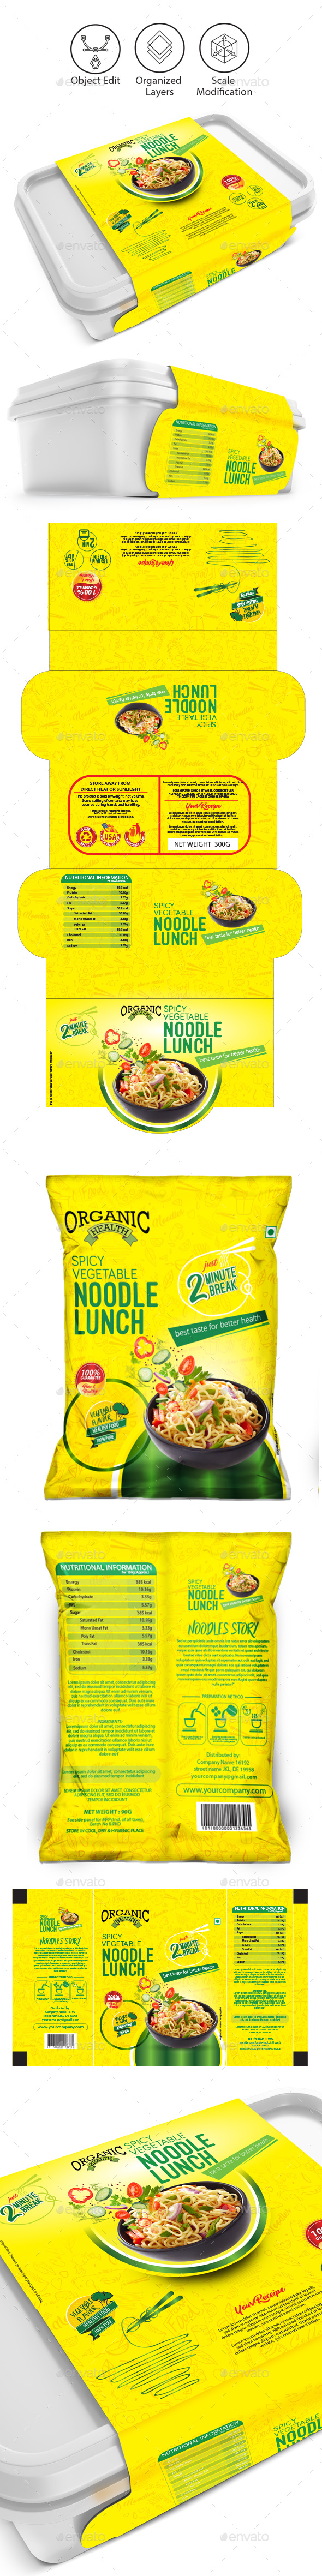 Noodles packaging templates - Packaging Print Templates